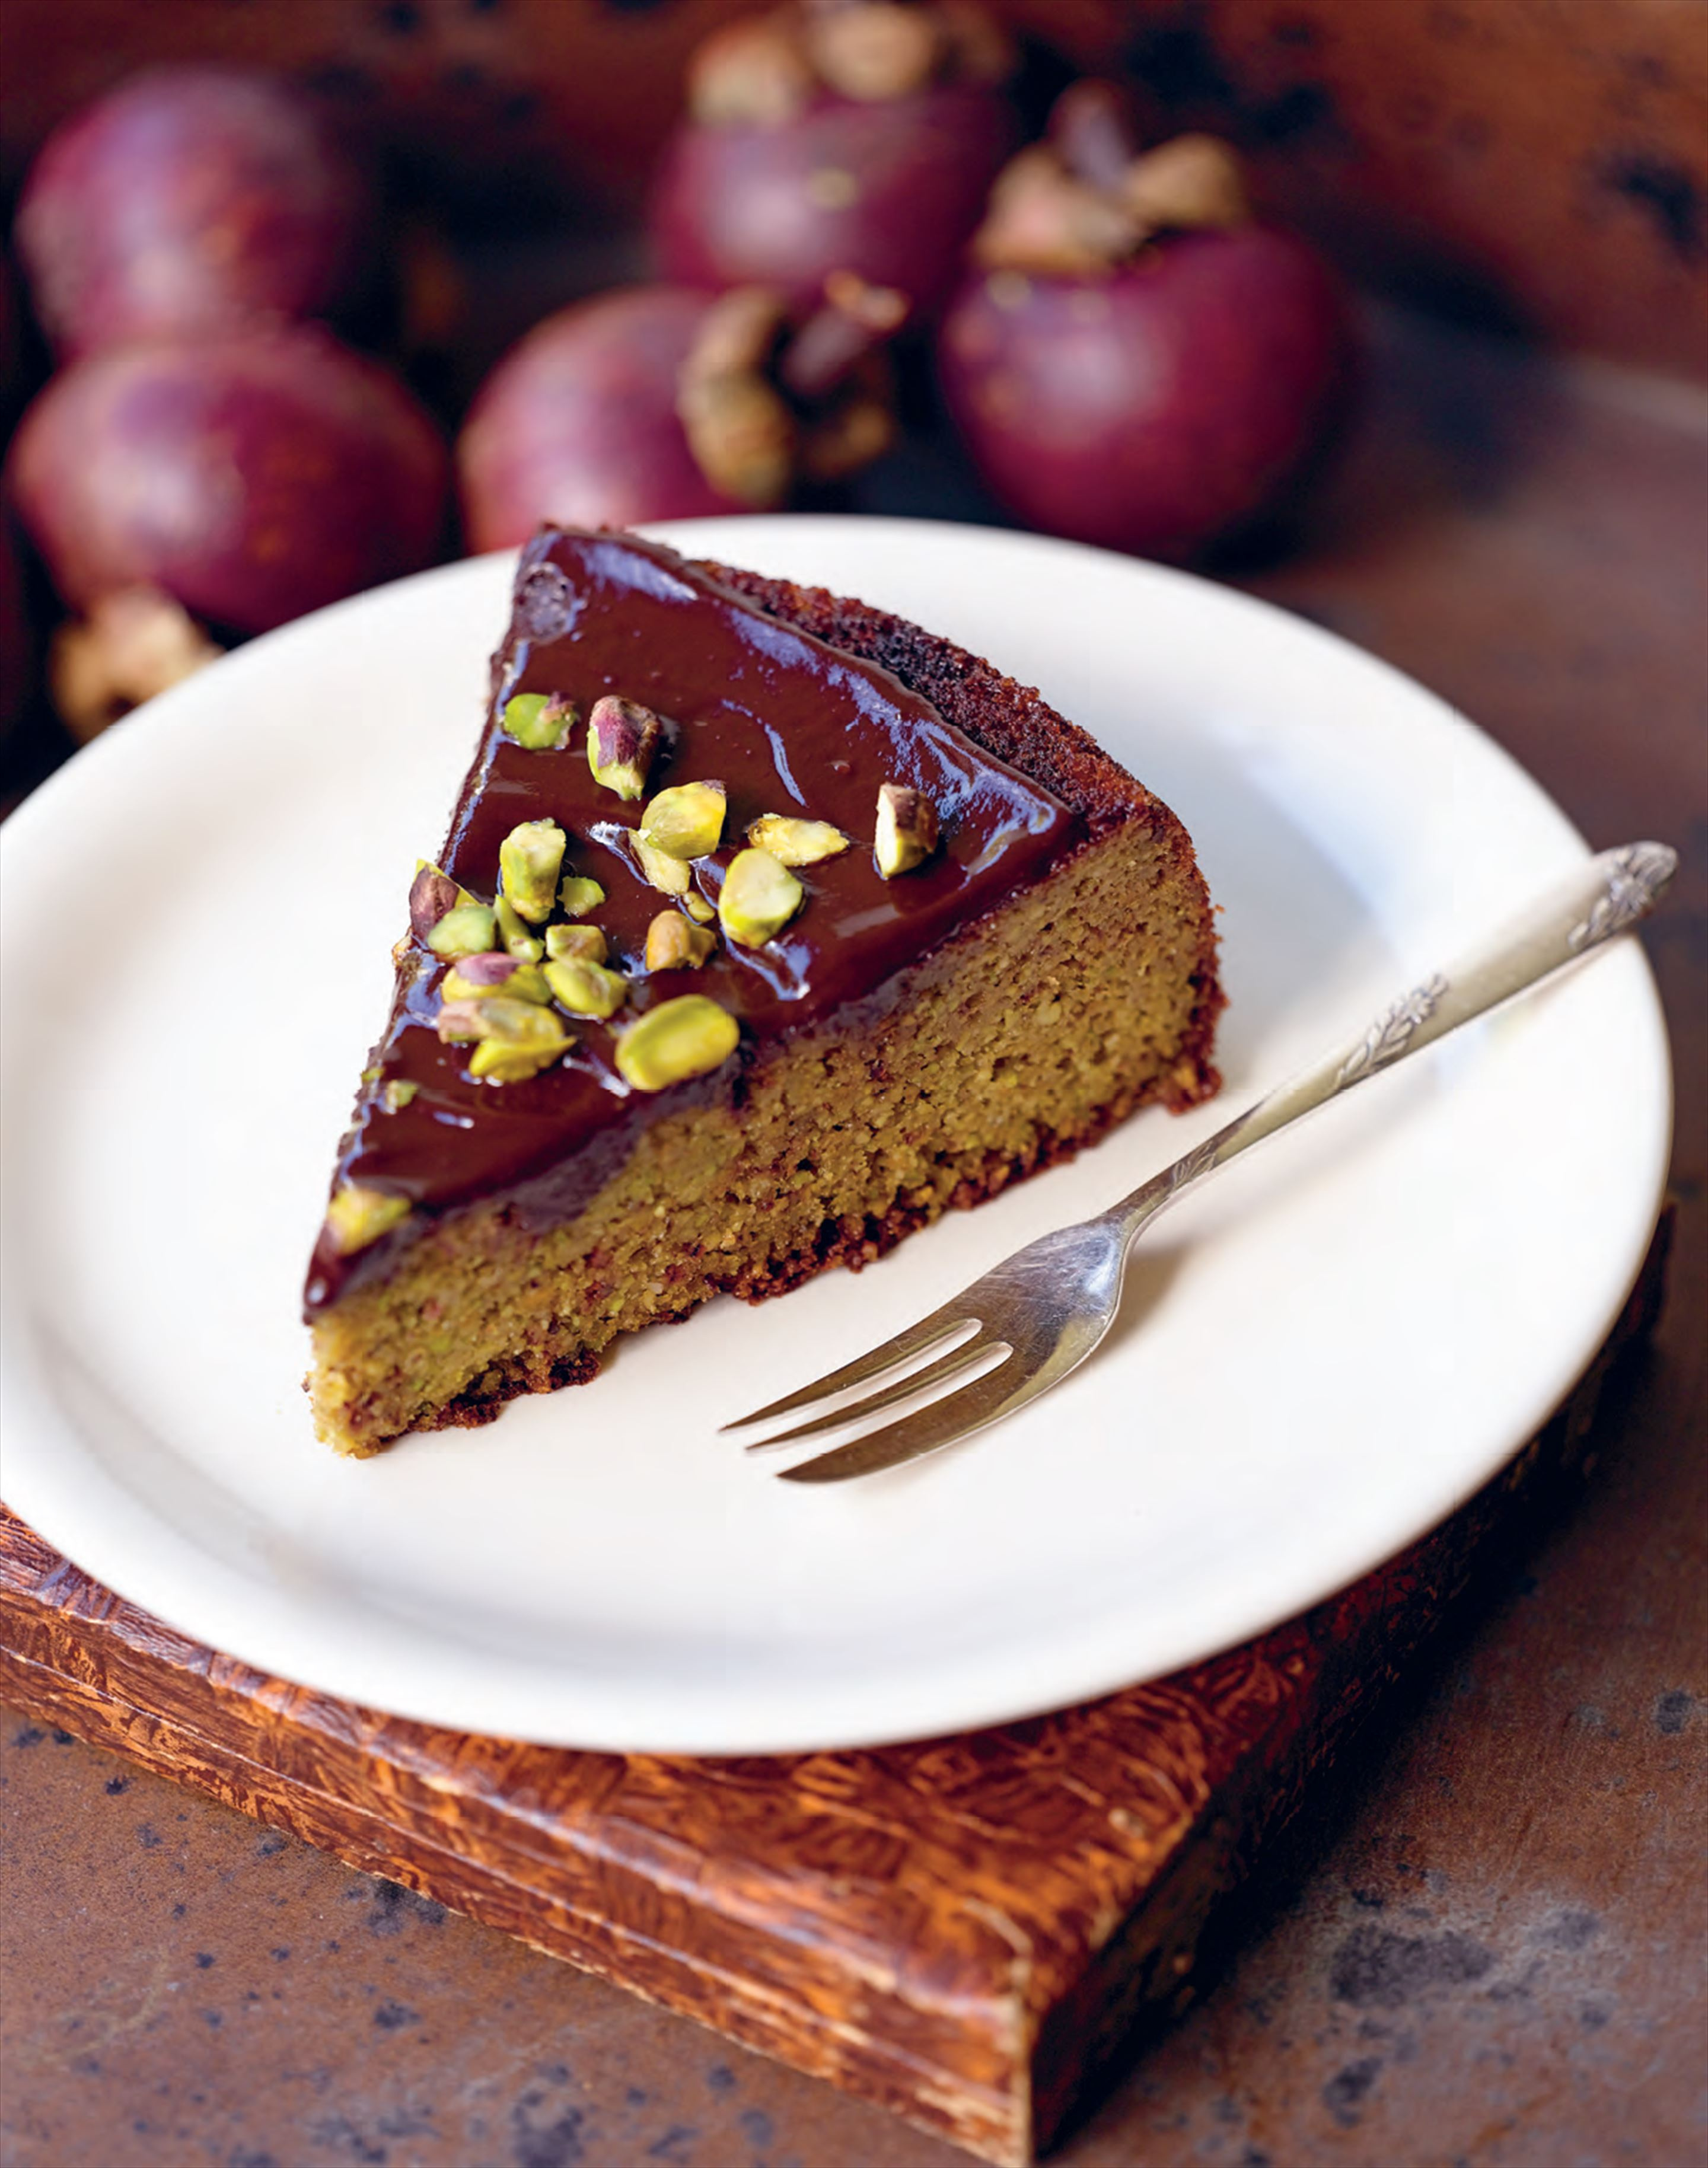 Middle Eastern pistachio and orange cake with pistachio ganache